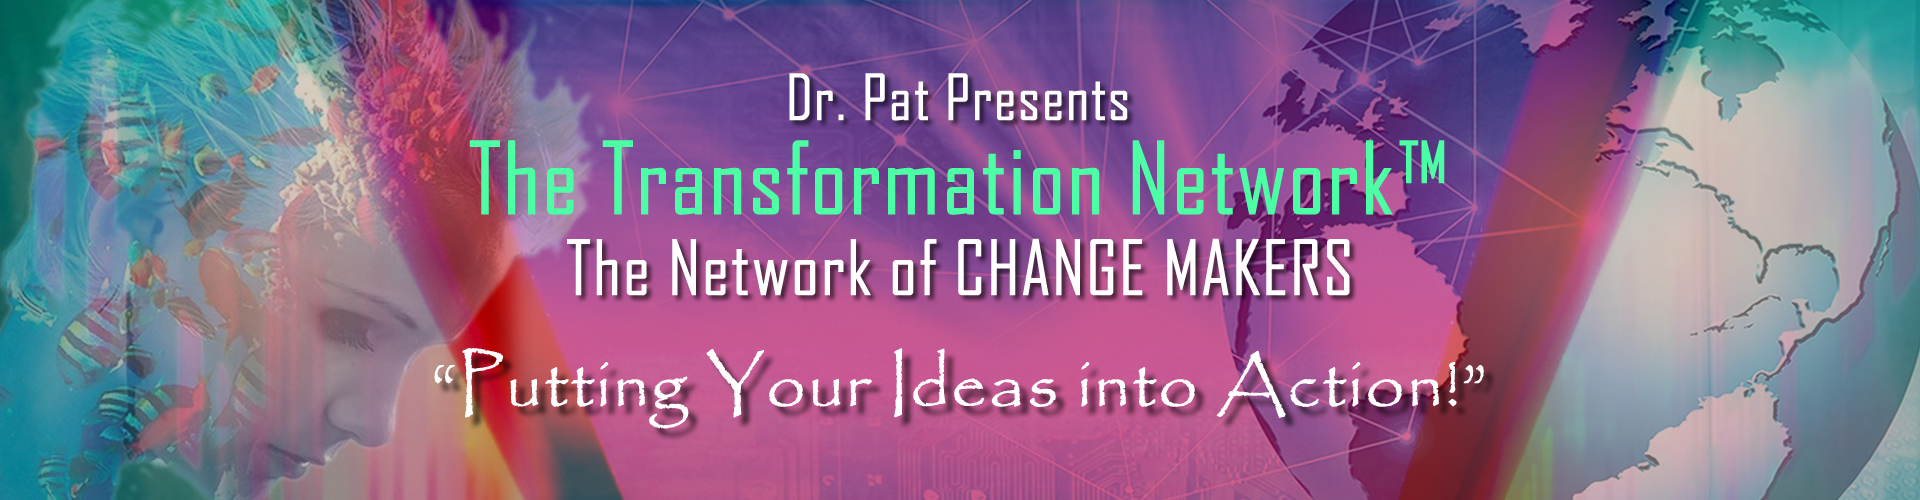 Dr. Pat presents The Transformation Network